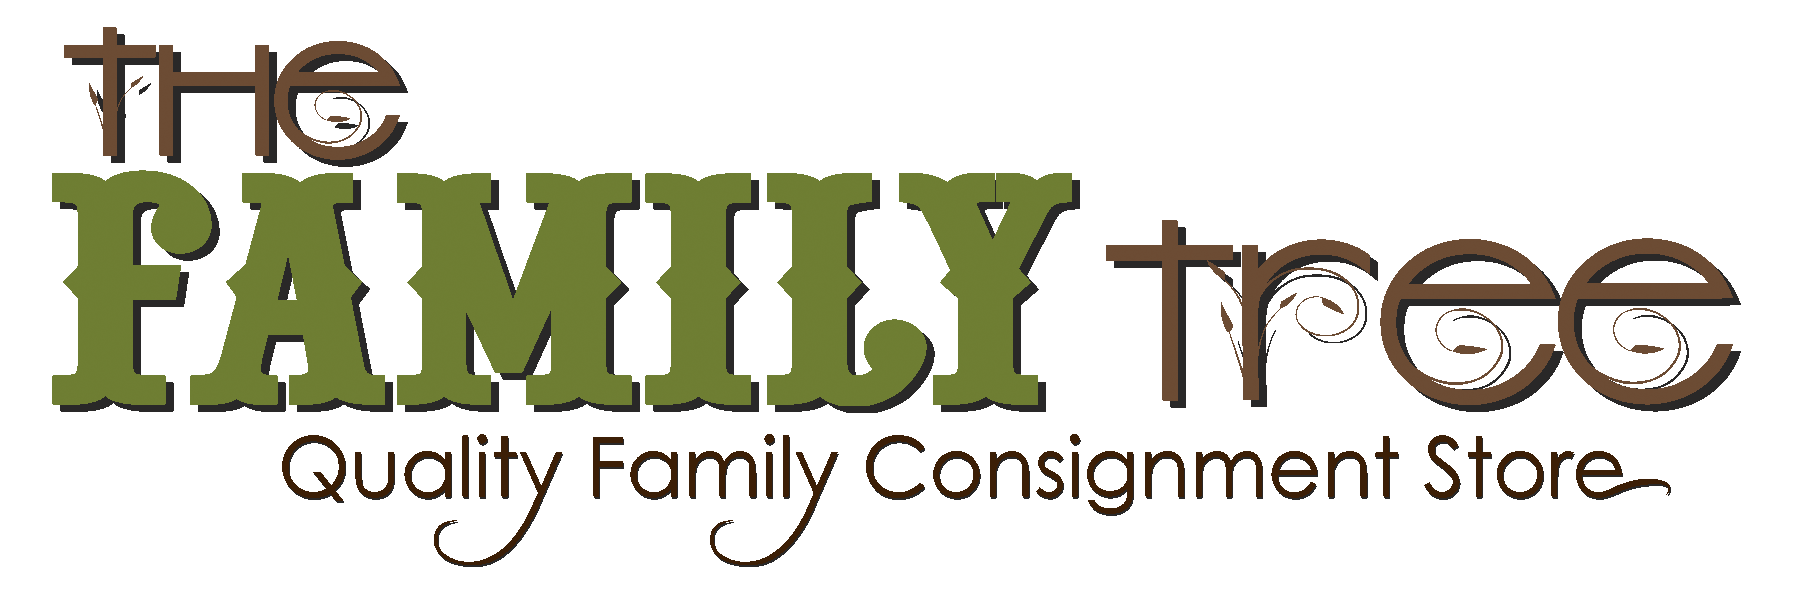 The Family Tree, Family Consignment Shop